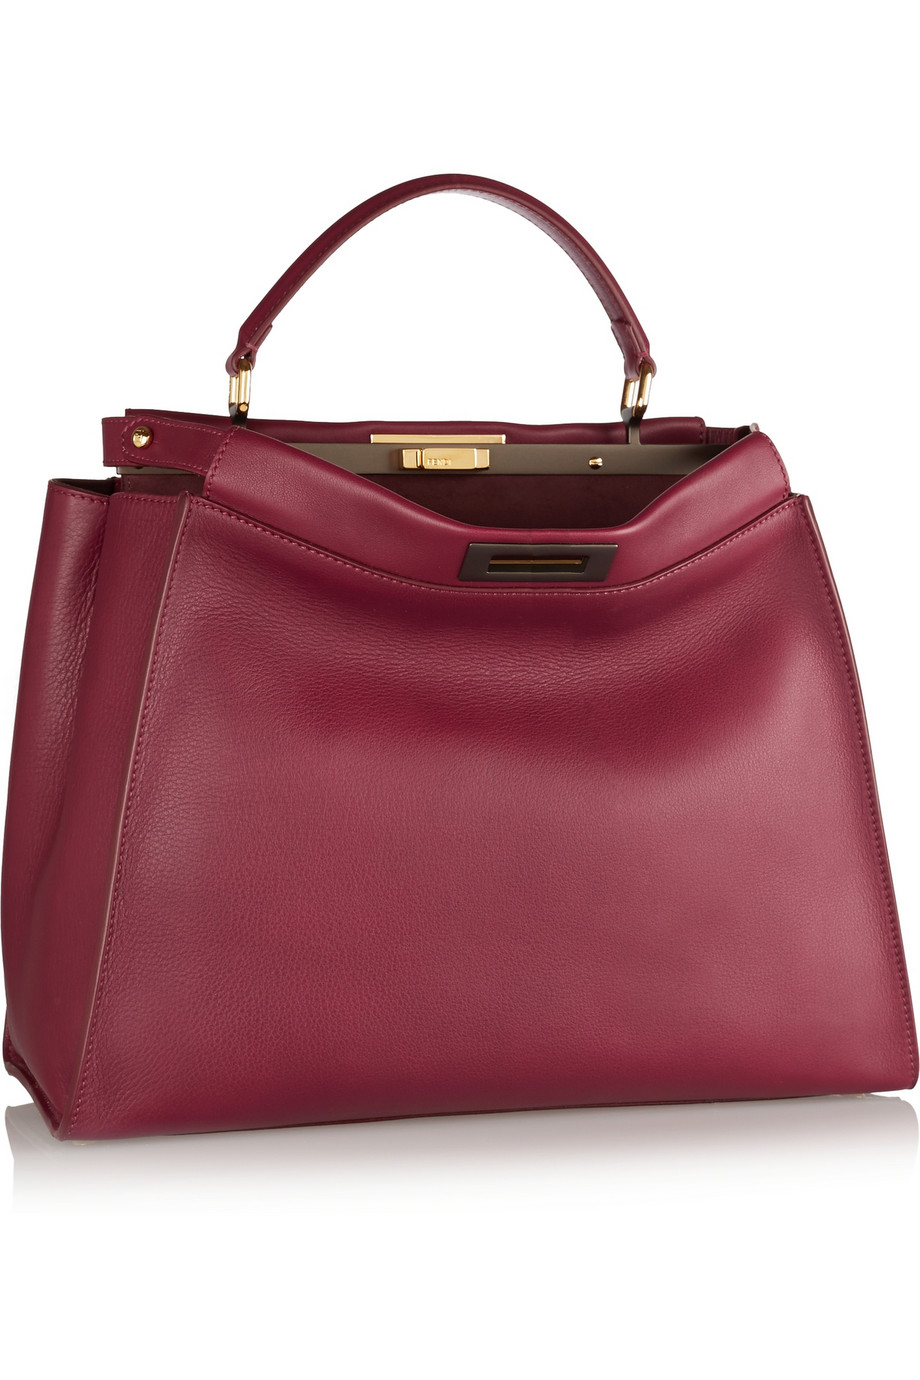 Lyst Fendi Peekaboo Medium Leather Tote In Red